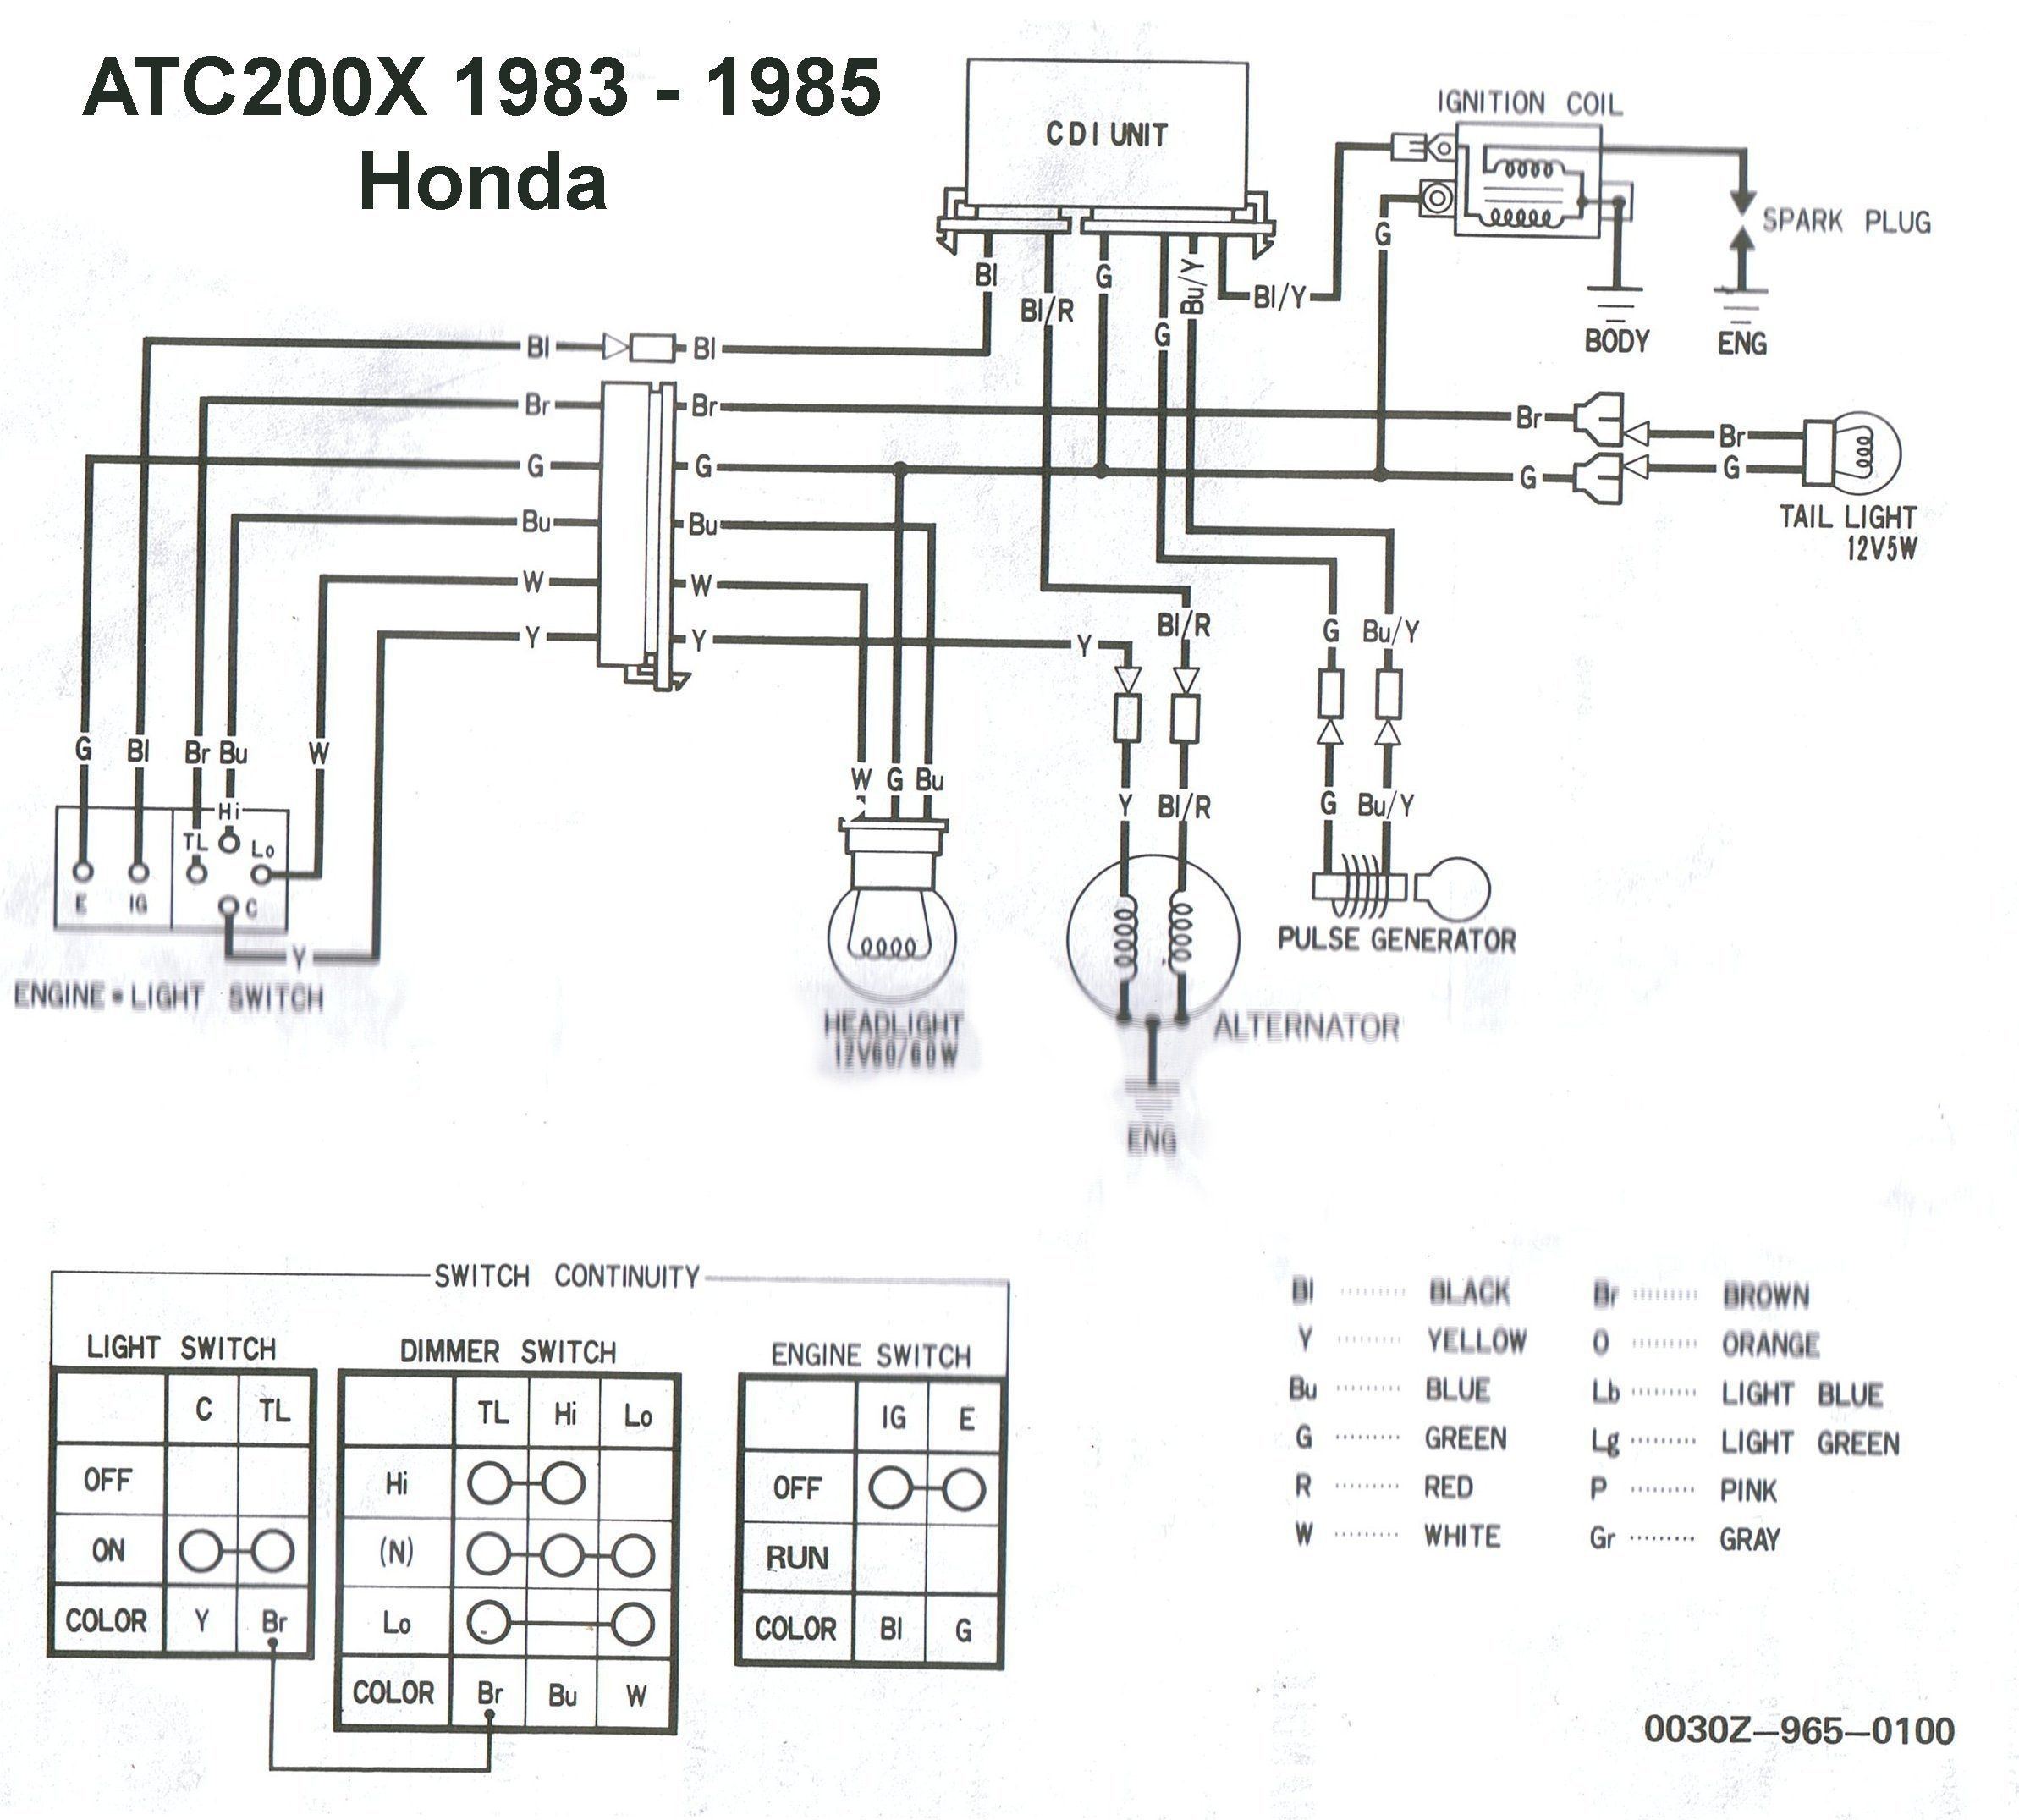 Wiring Diagram Honda Atc200x 1983 Thru 1985 Factory Diagram In 2020 Honda Diagram House Wiring